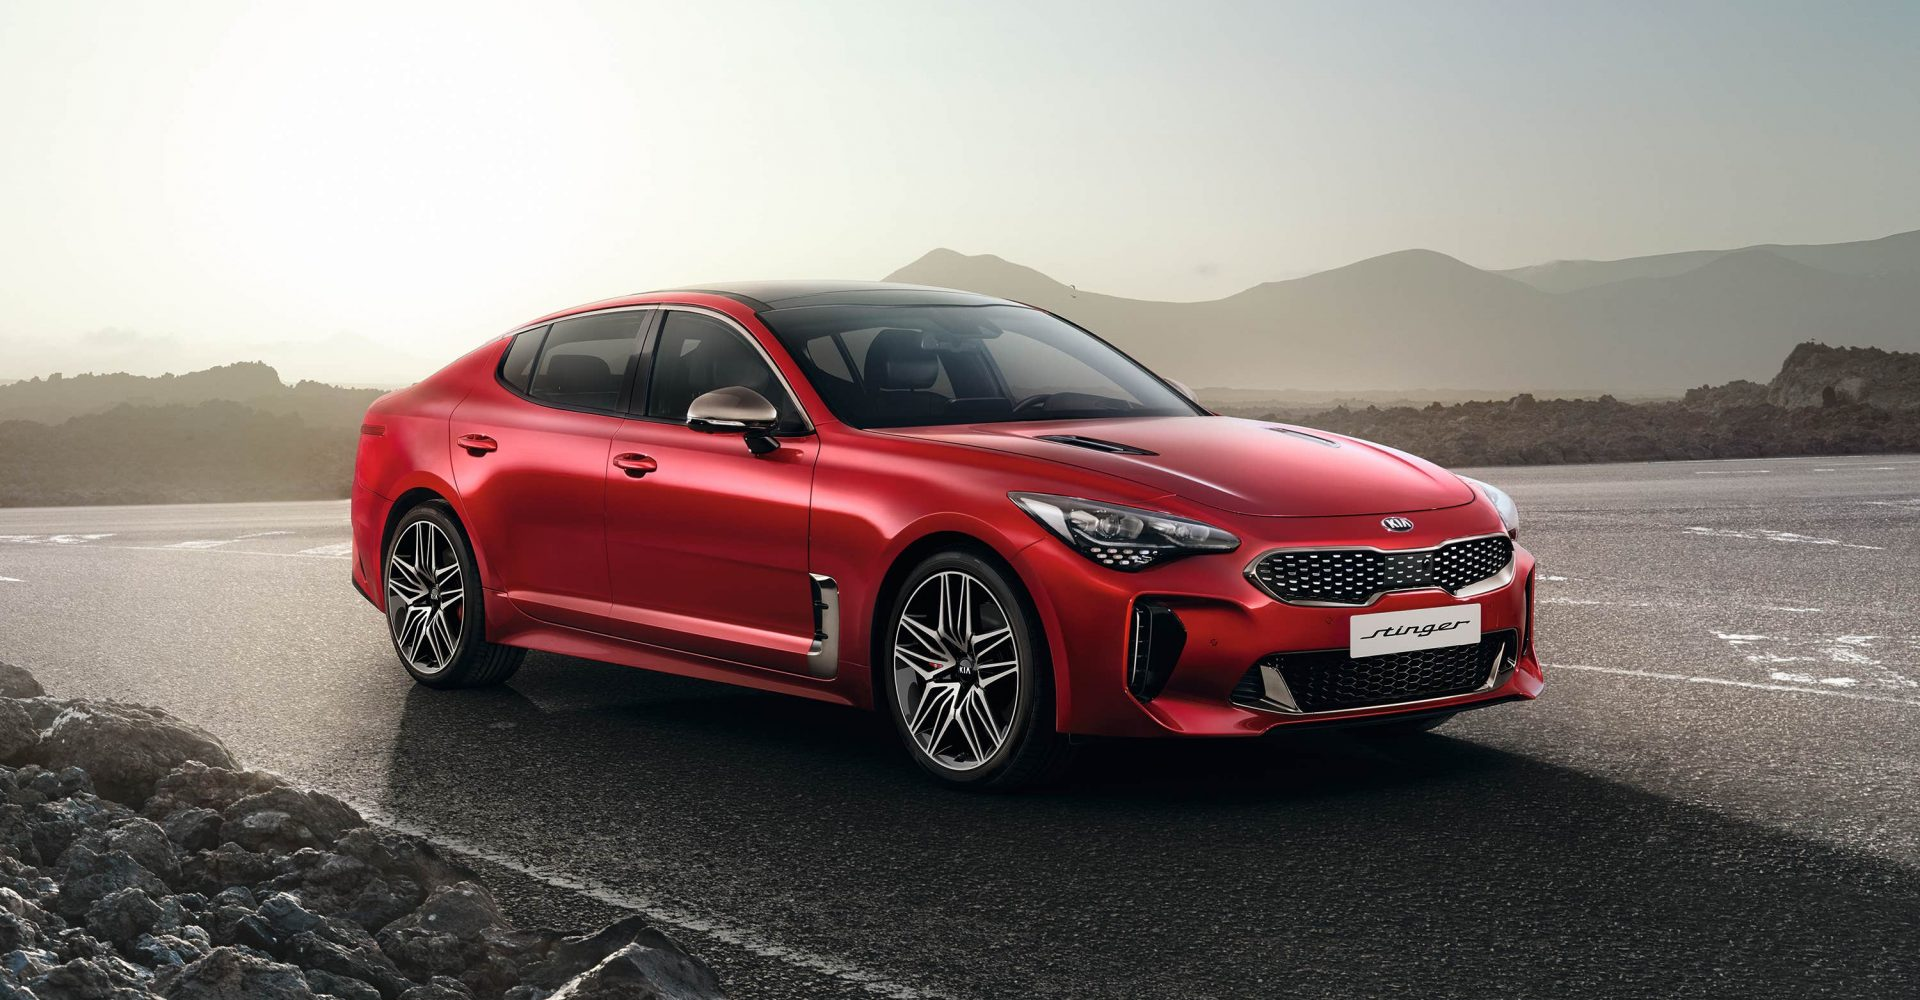 Updated Kia Stinger brings refreshed design and tech upgrades